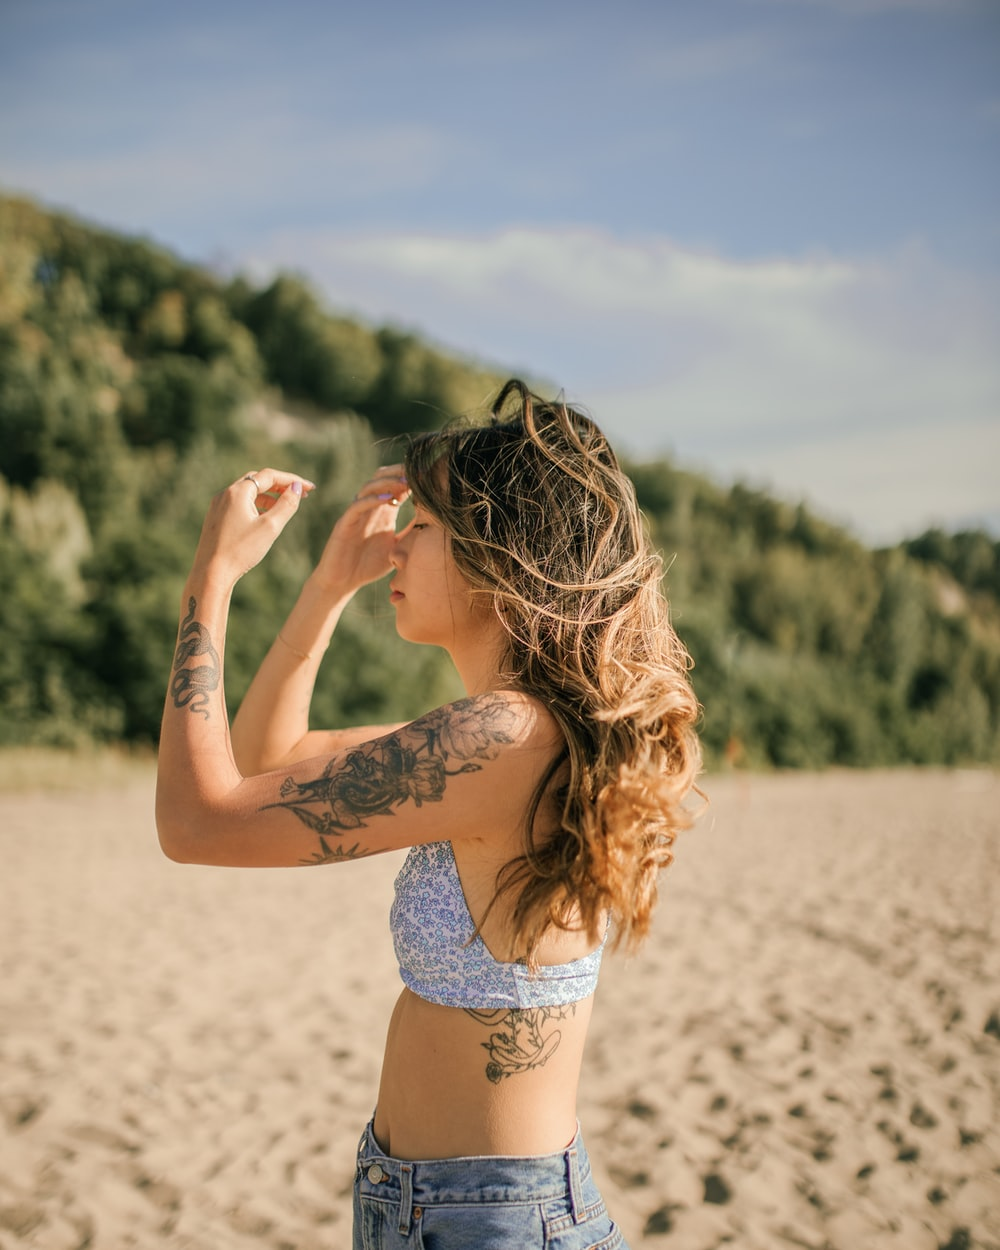 woman in blue and white floral bikini standing on brown sand during daytime